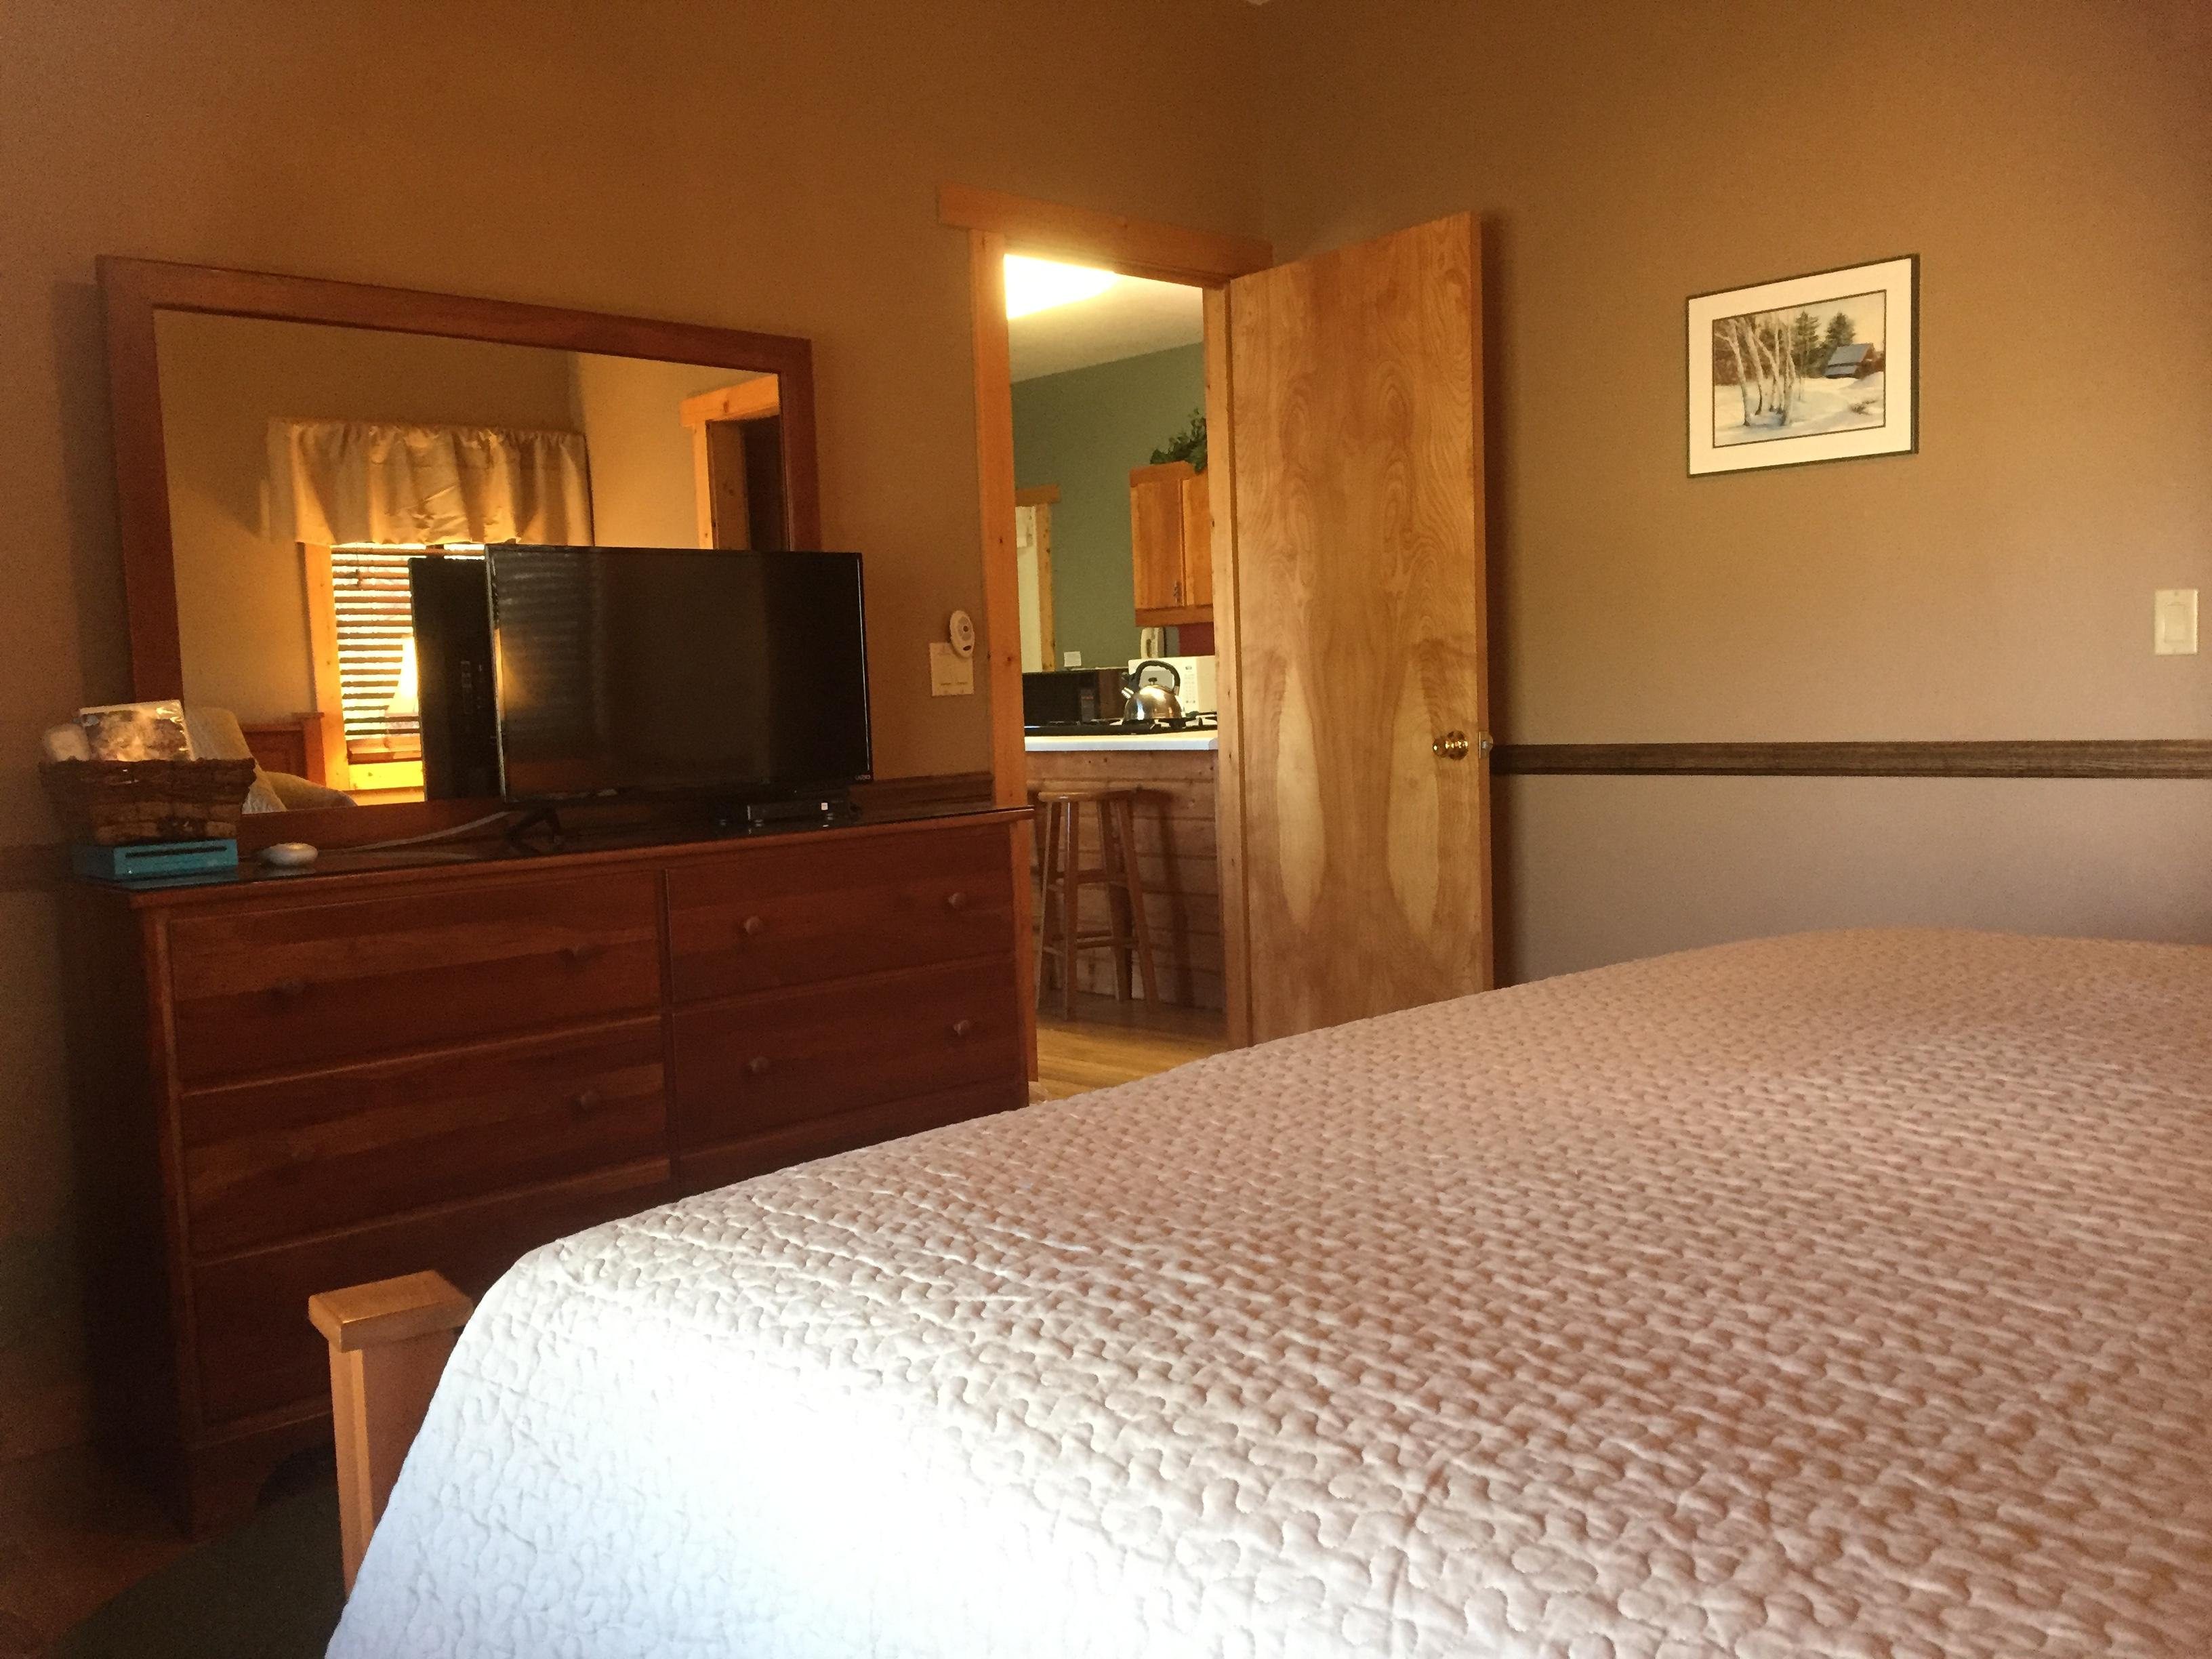 King Suites, are on opposite ends of the cabin, offers so much Privacy. Perfect for Two Couples!